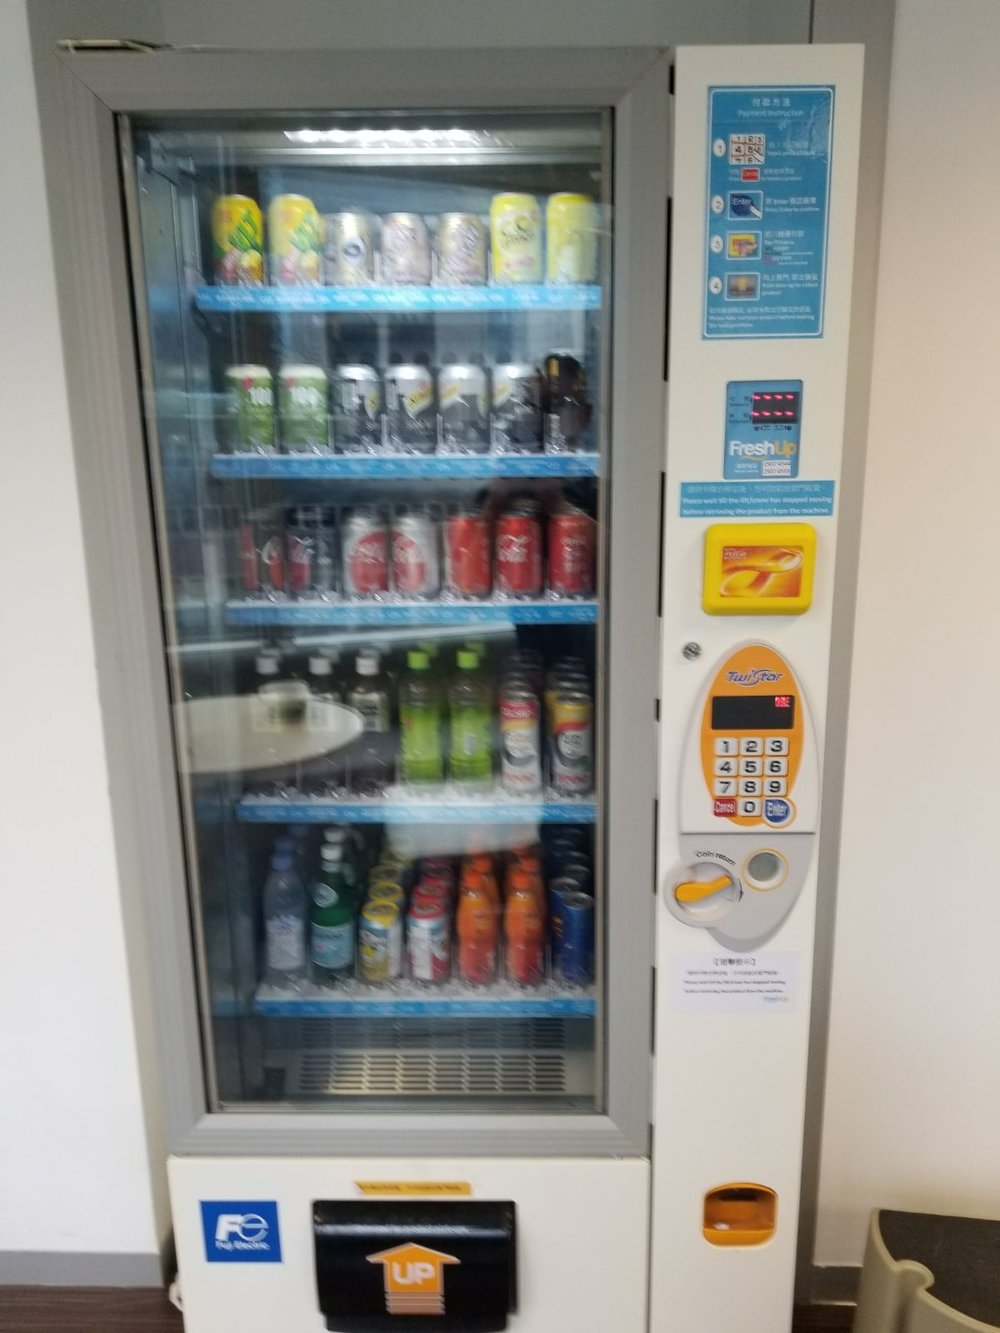 Freshup, vending machine hk, interactive, food, beverage, smart retail, convenient, vending services, professional, investment banks, ANZ